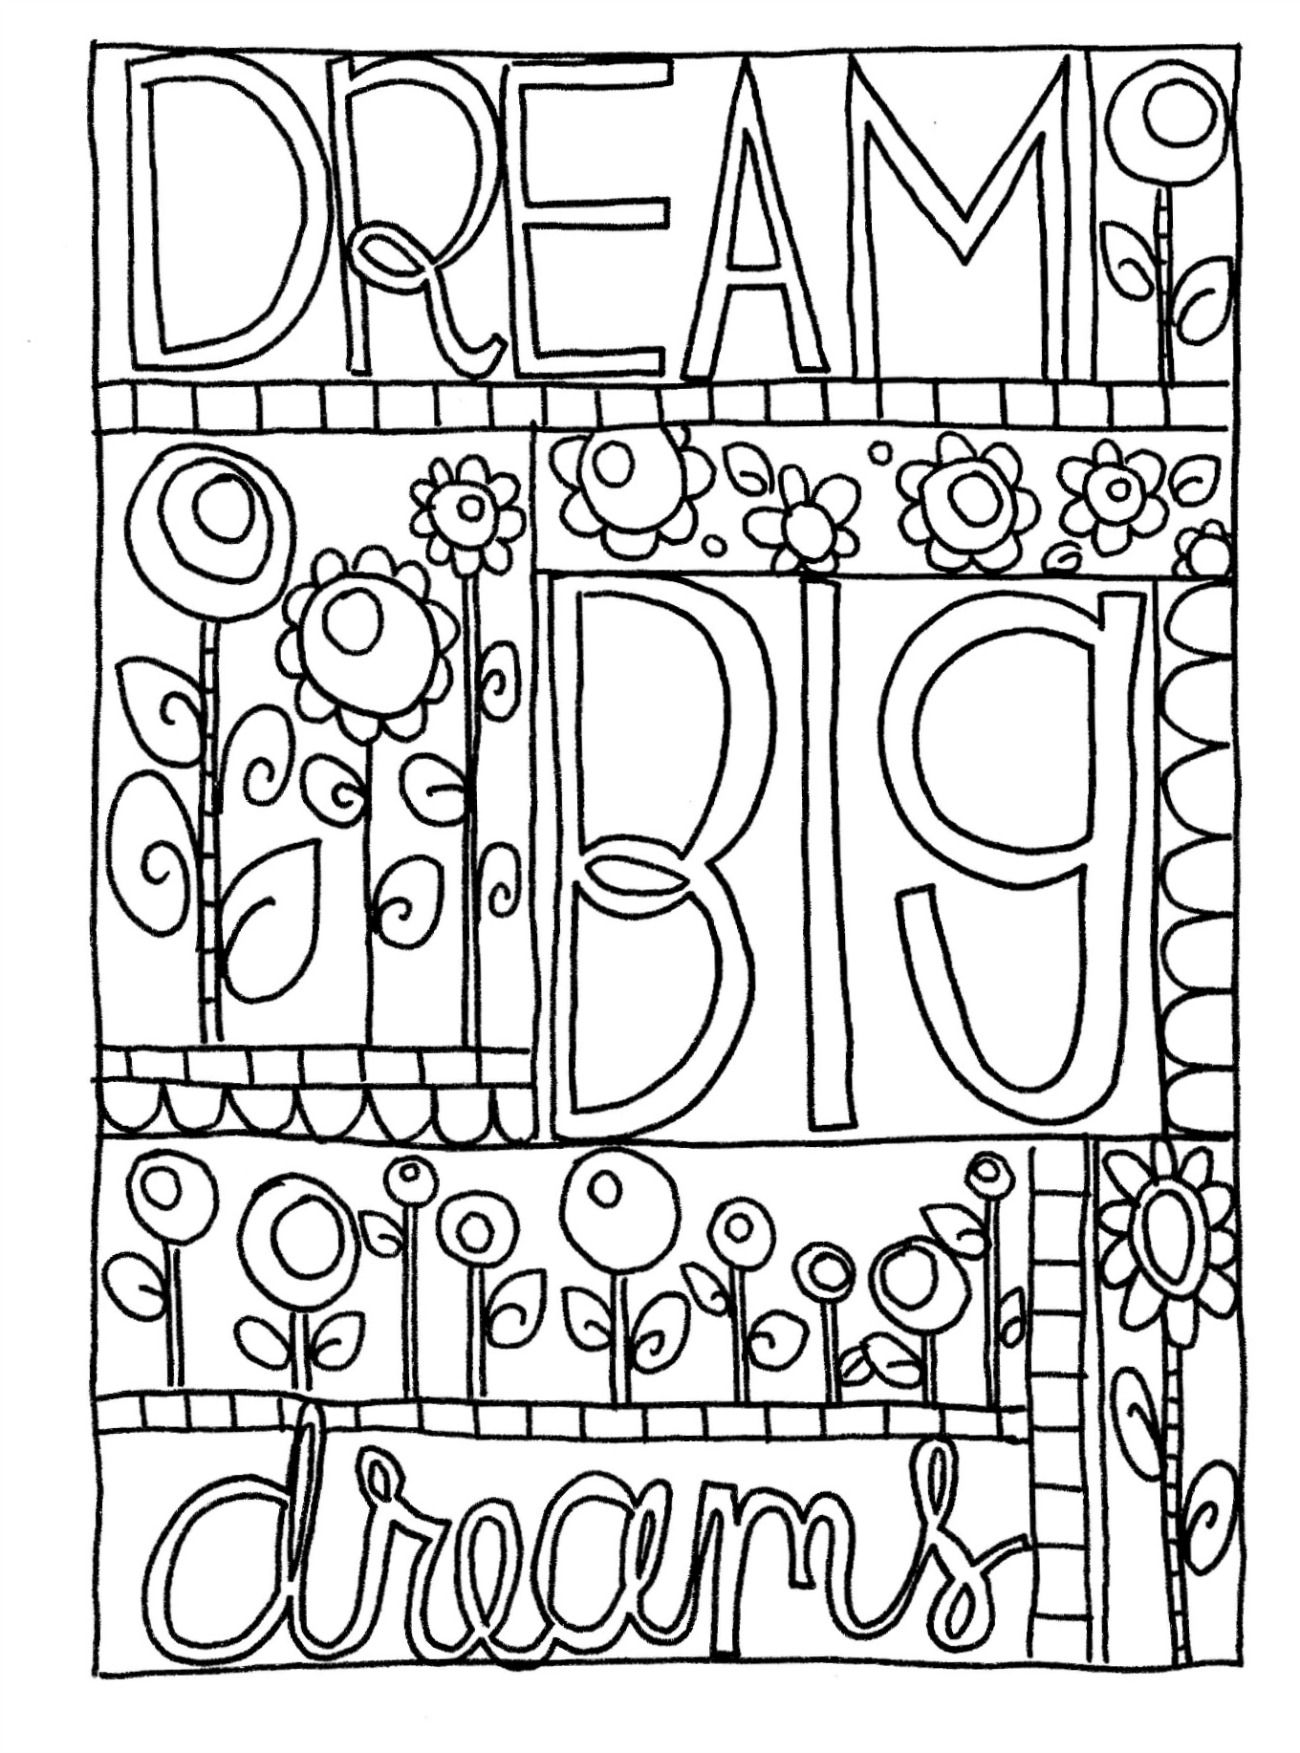 coloring printable pages for kids may coloring pages best coloring pages for kids for kids printable pages coloring